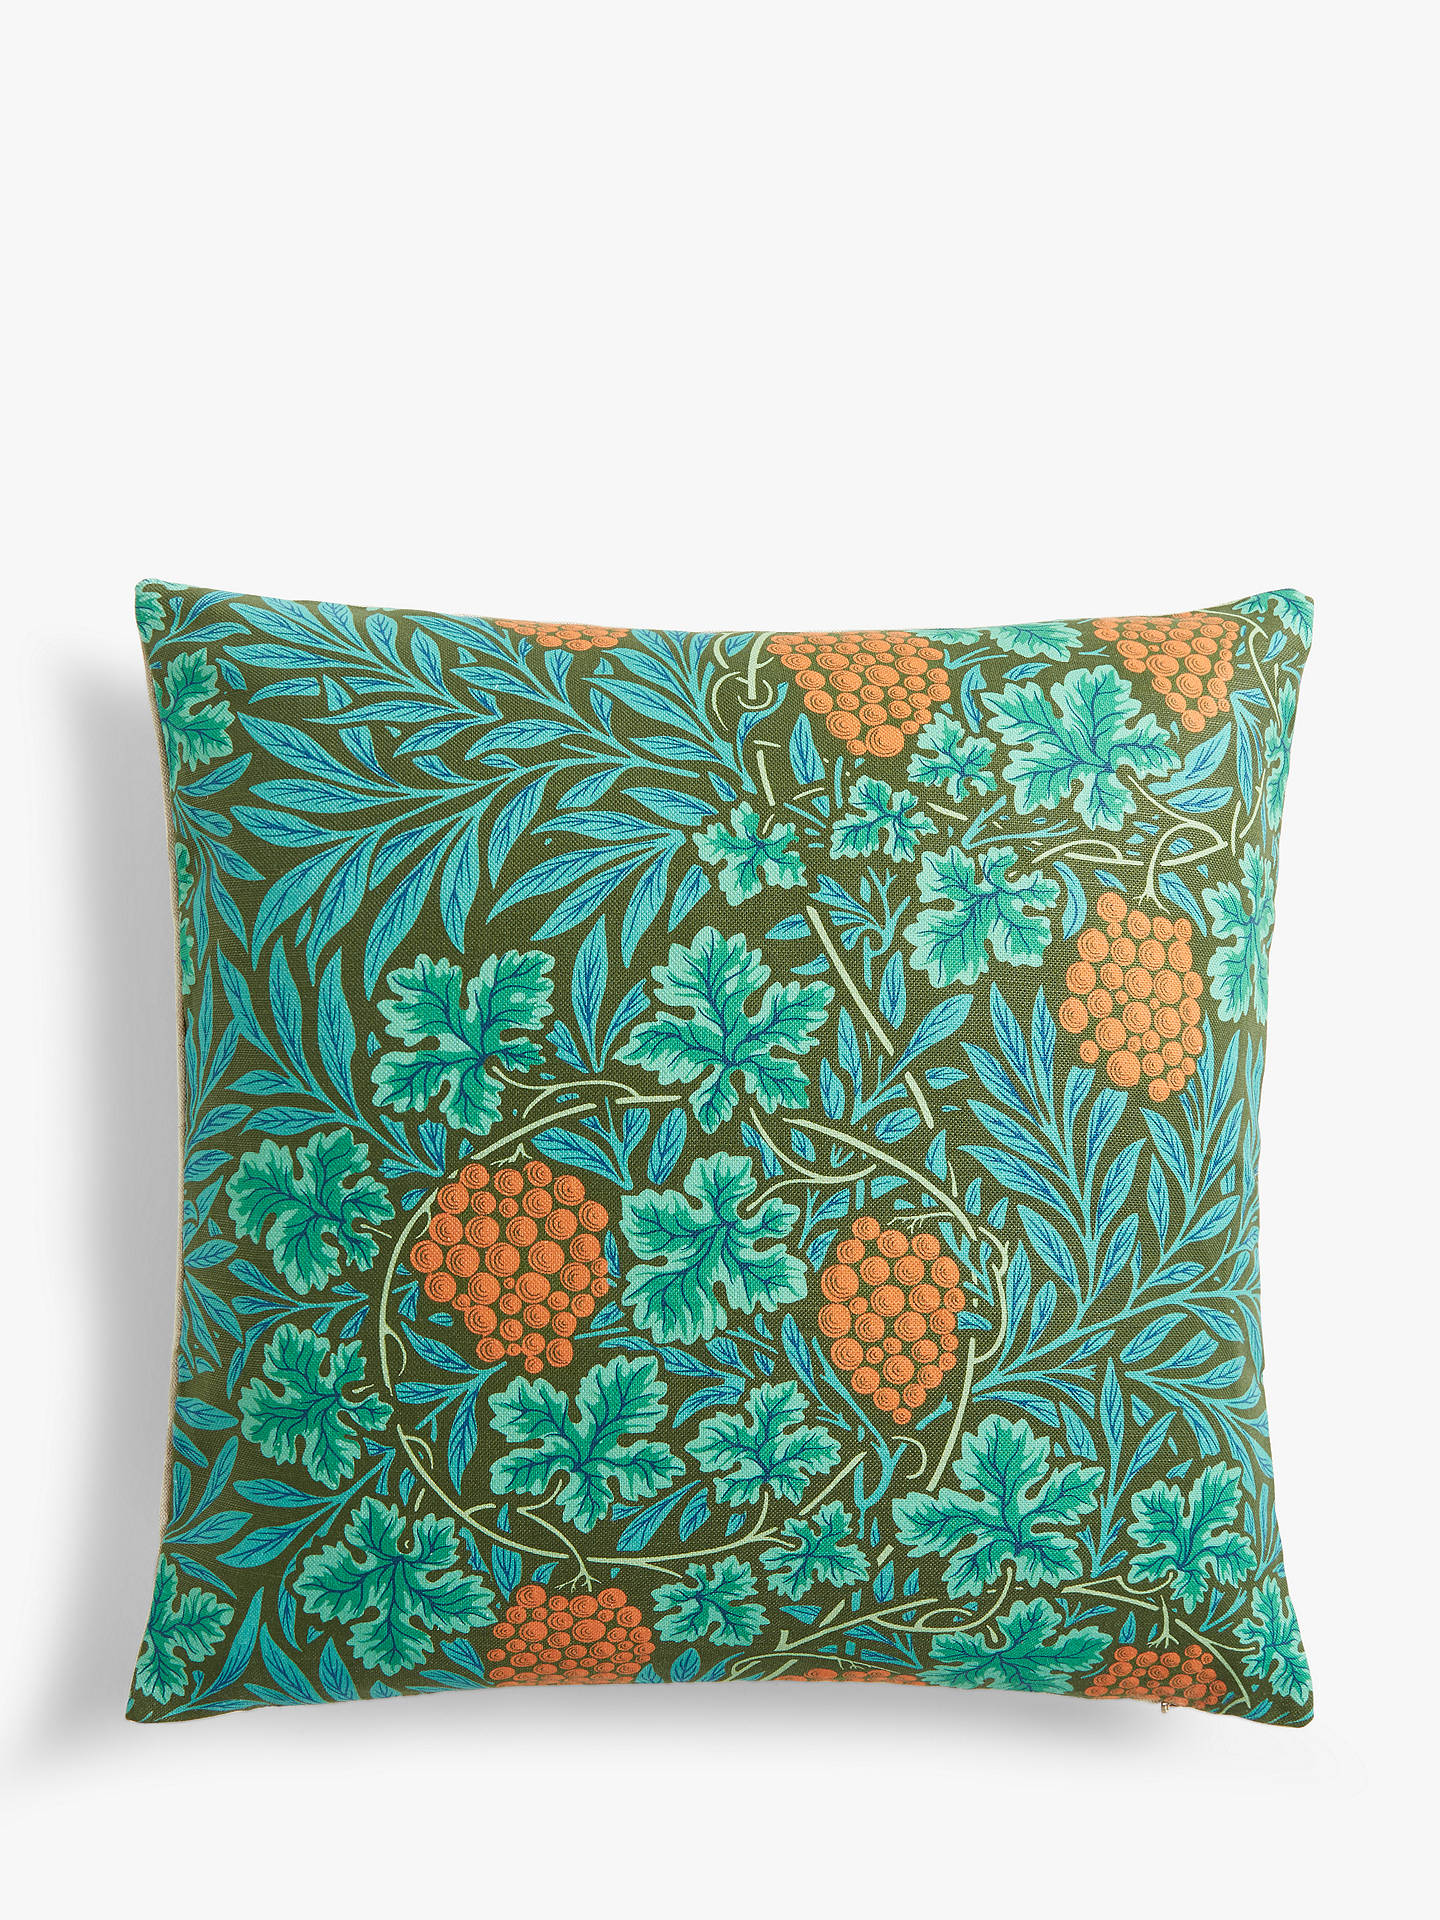 Buy Morris & Co. Vine Cushion, Dark Olive Online at johnlewis.com